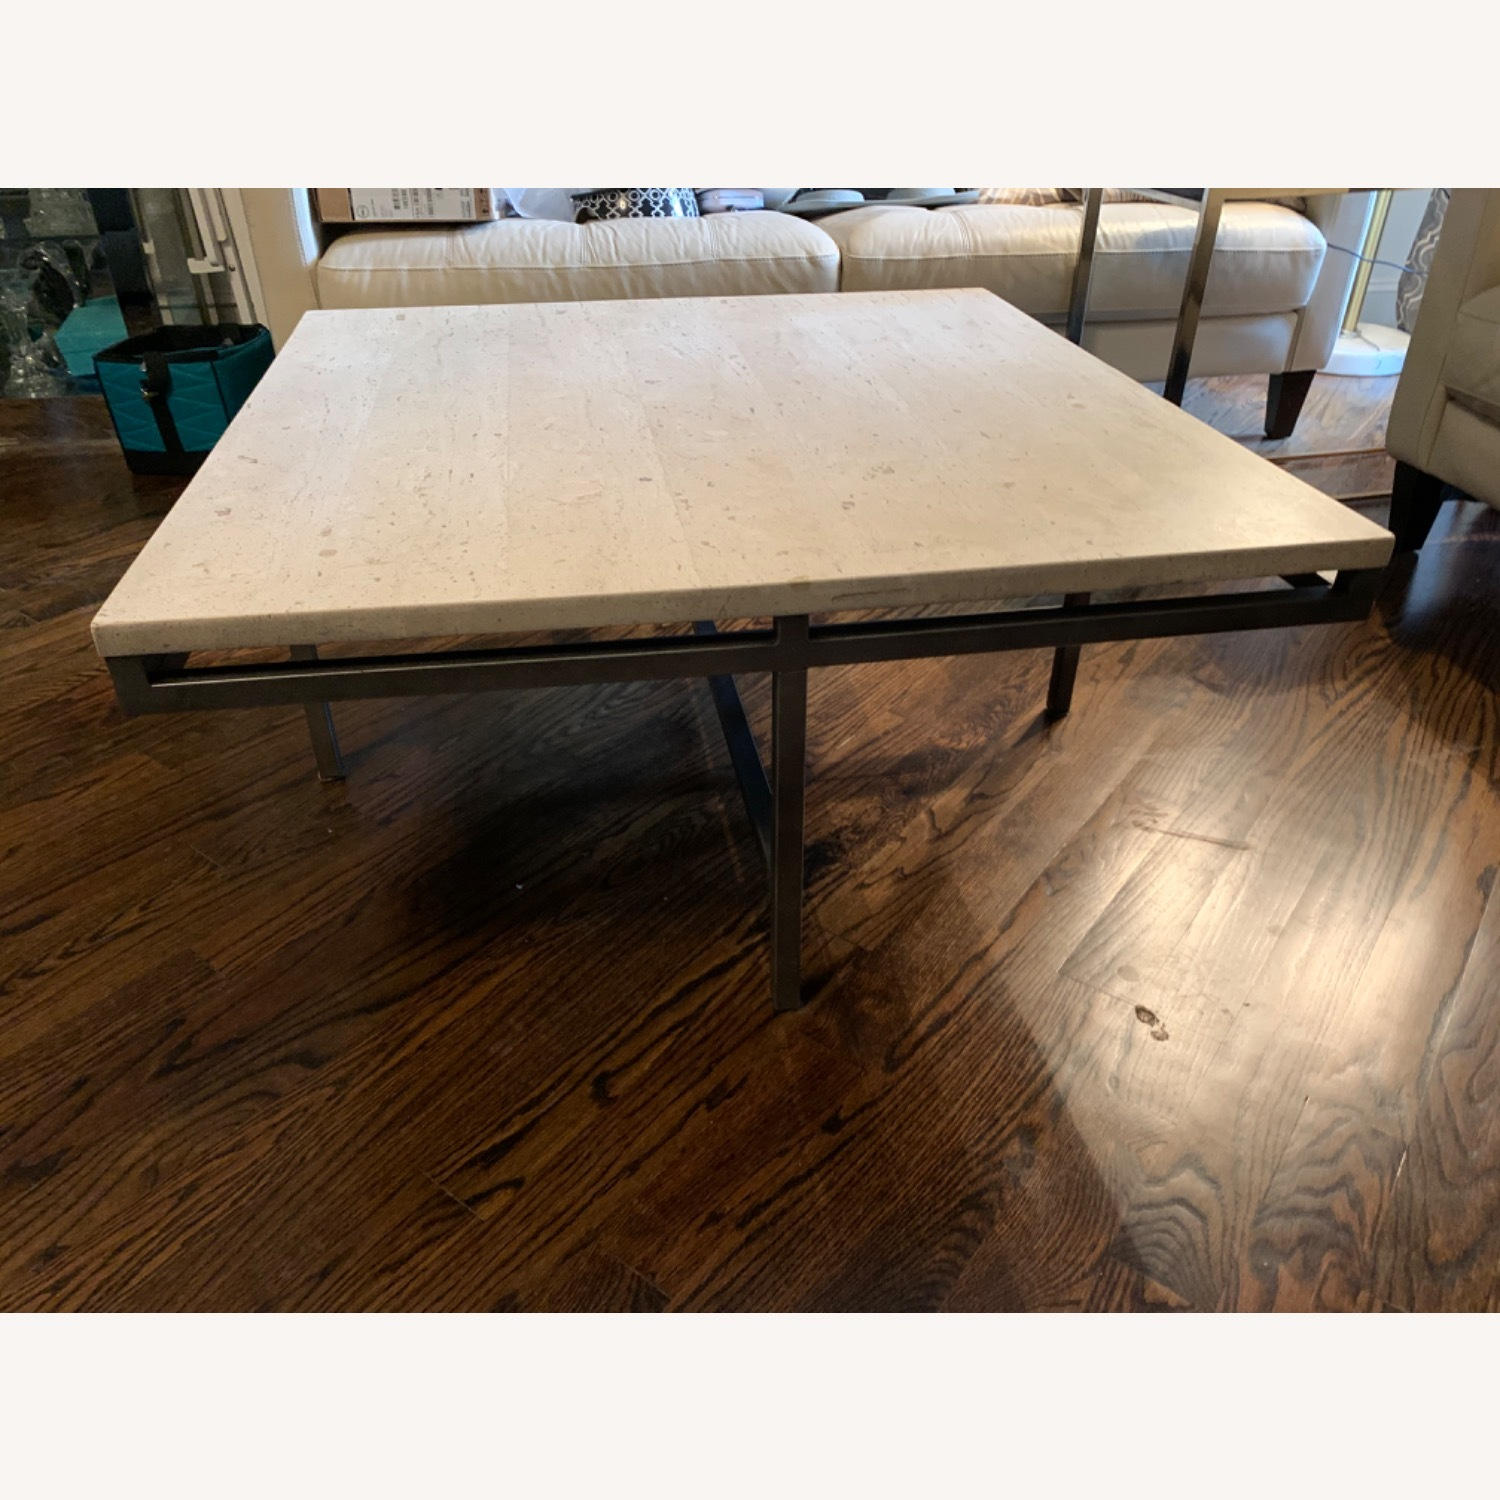 Modern Travertine Coffee Table - image-4